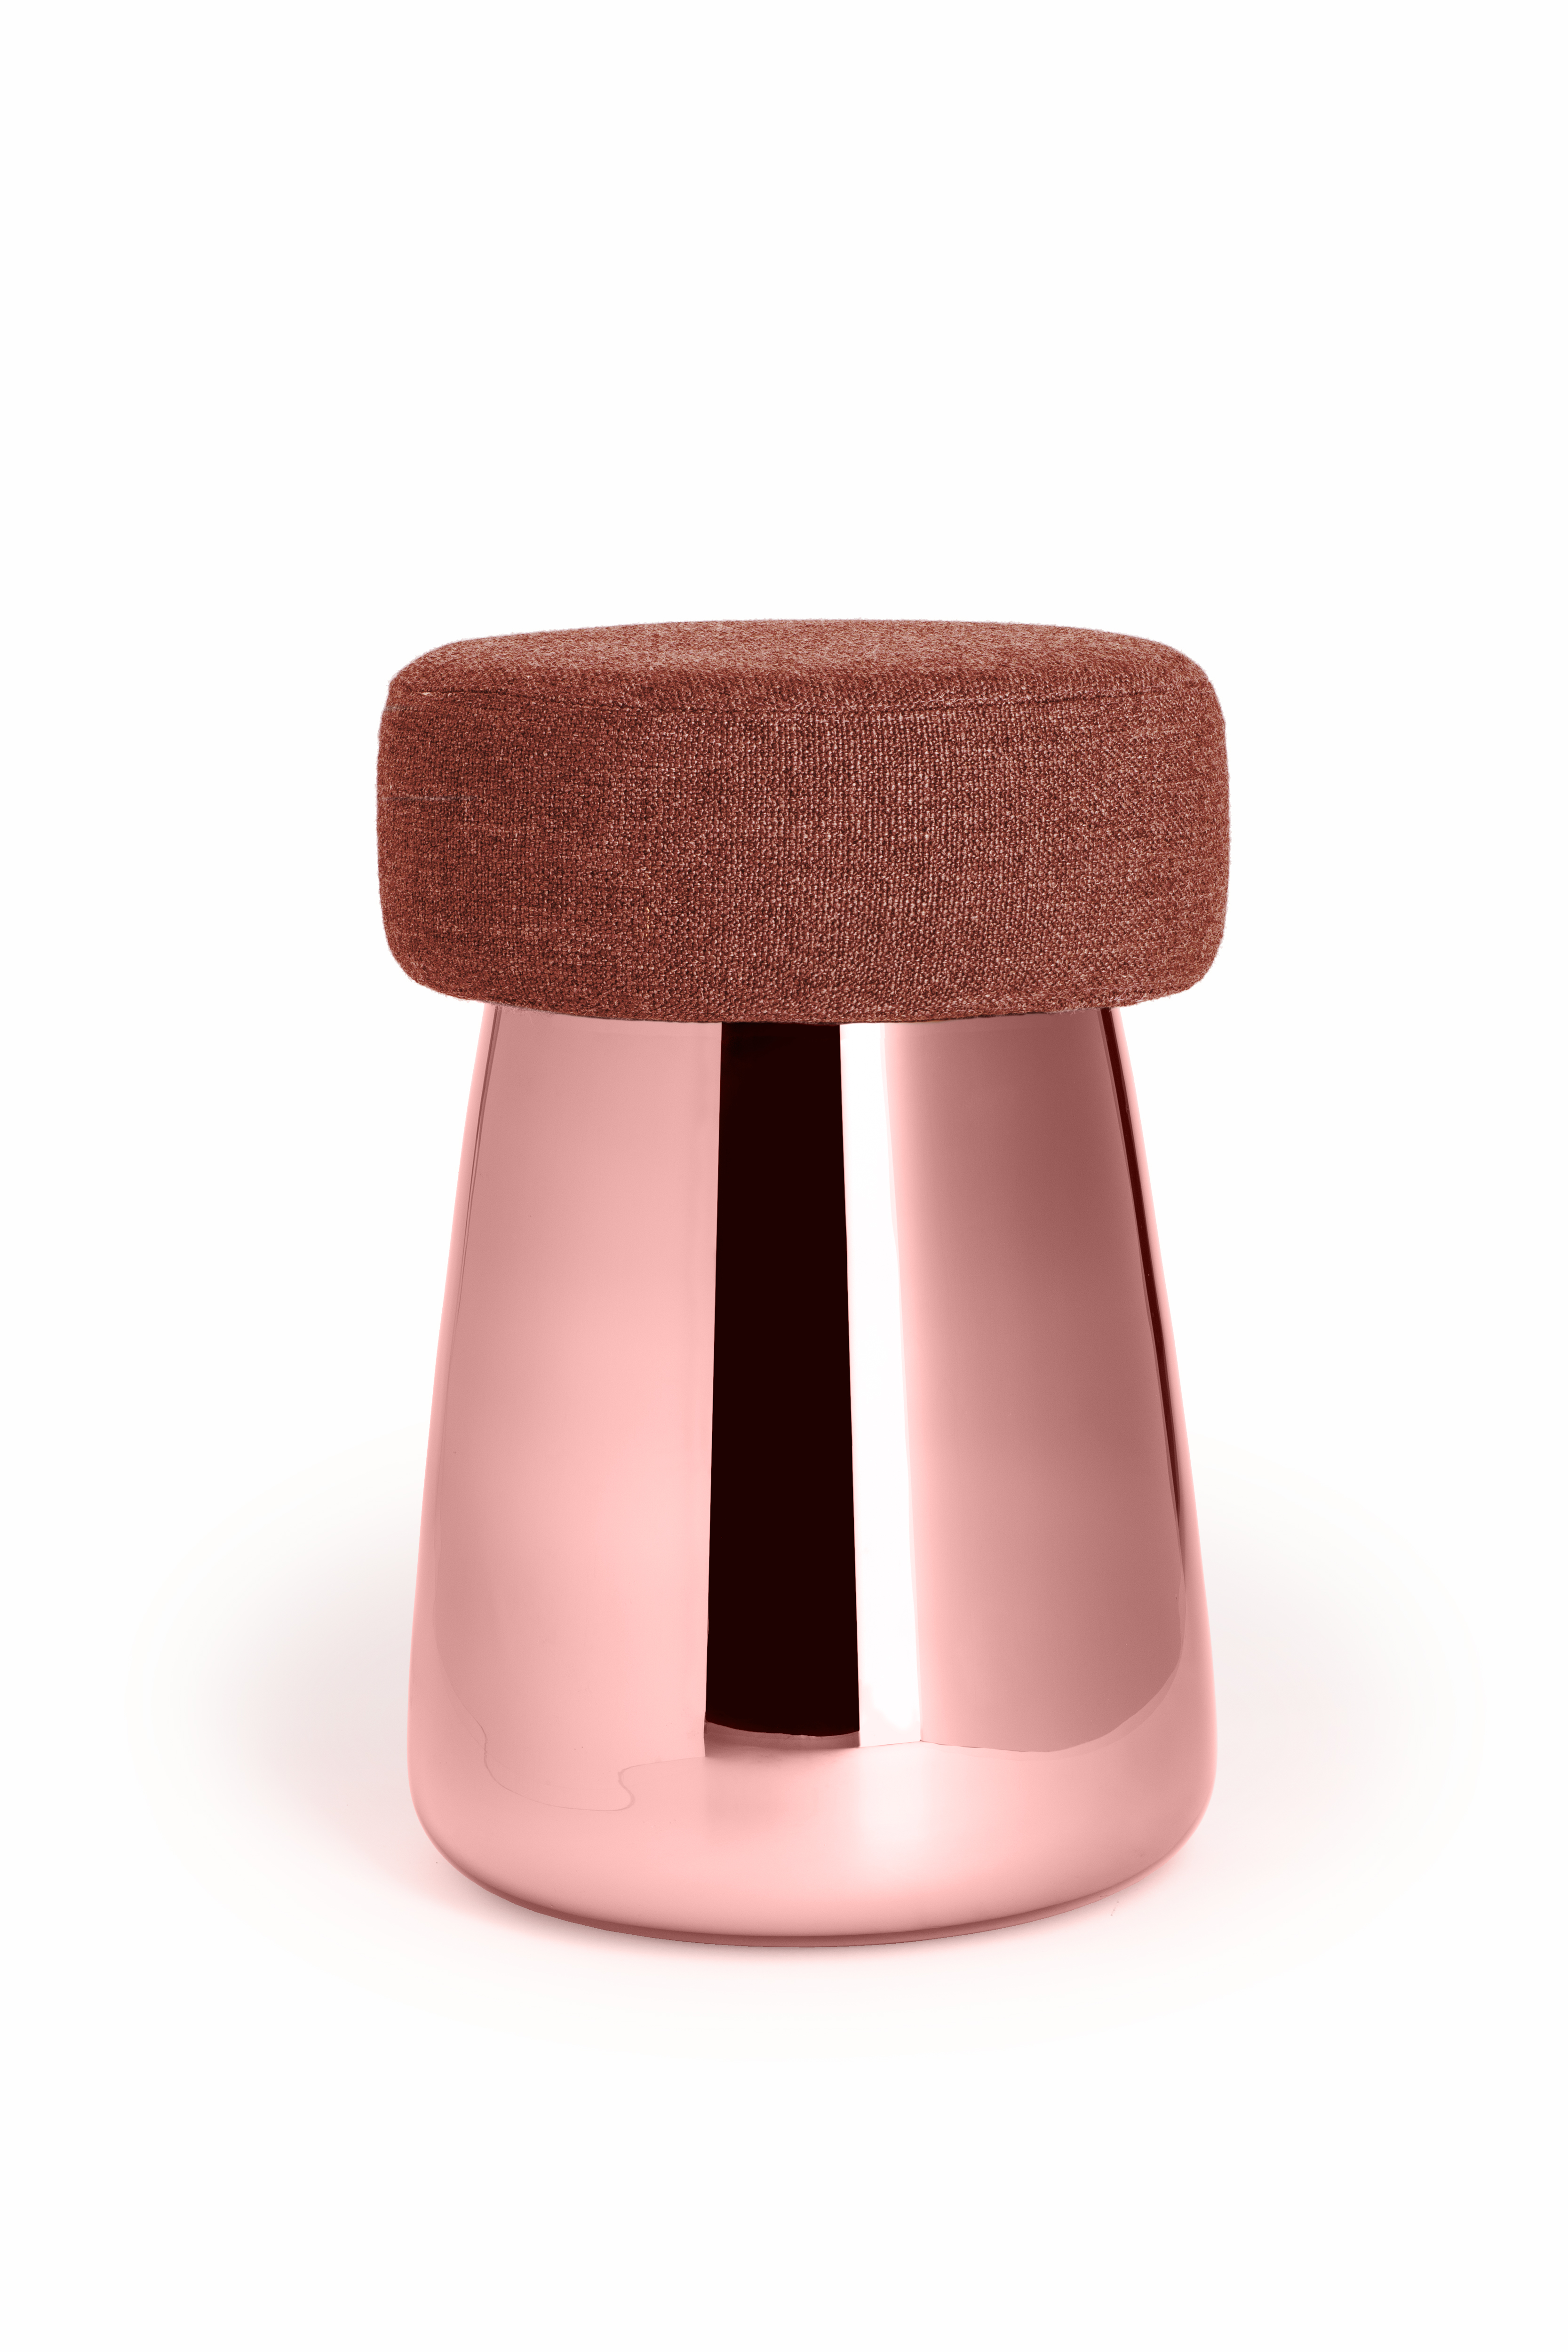 Alain Gilles (BE), Chubby, pink silvered blown glass stool combined with upholstered fabric, wood, foam, cm 48H x 30Ø, ed. by VERREUM (CZ), 2016. ©Verreum